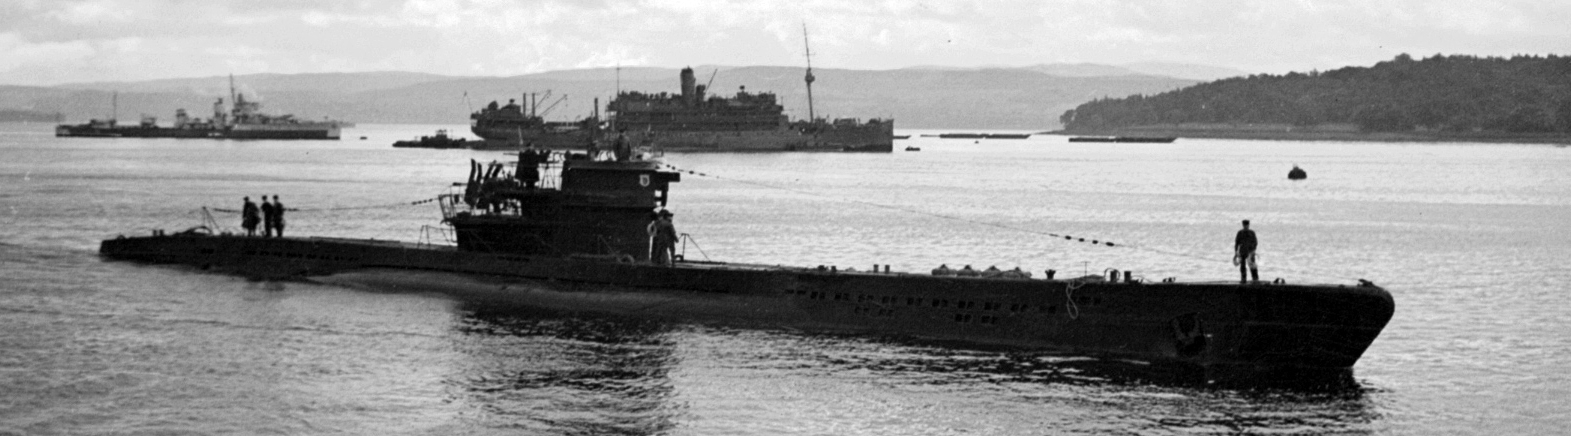 U-1105 in Holy Loch during its trials by the Royal Navy